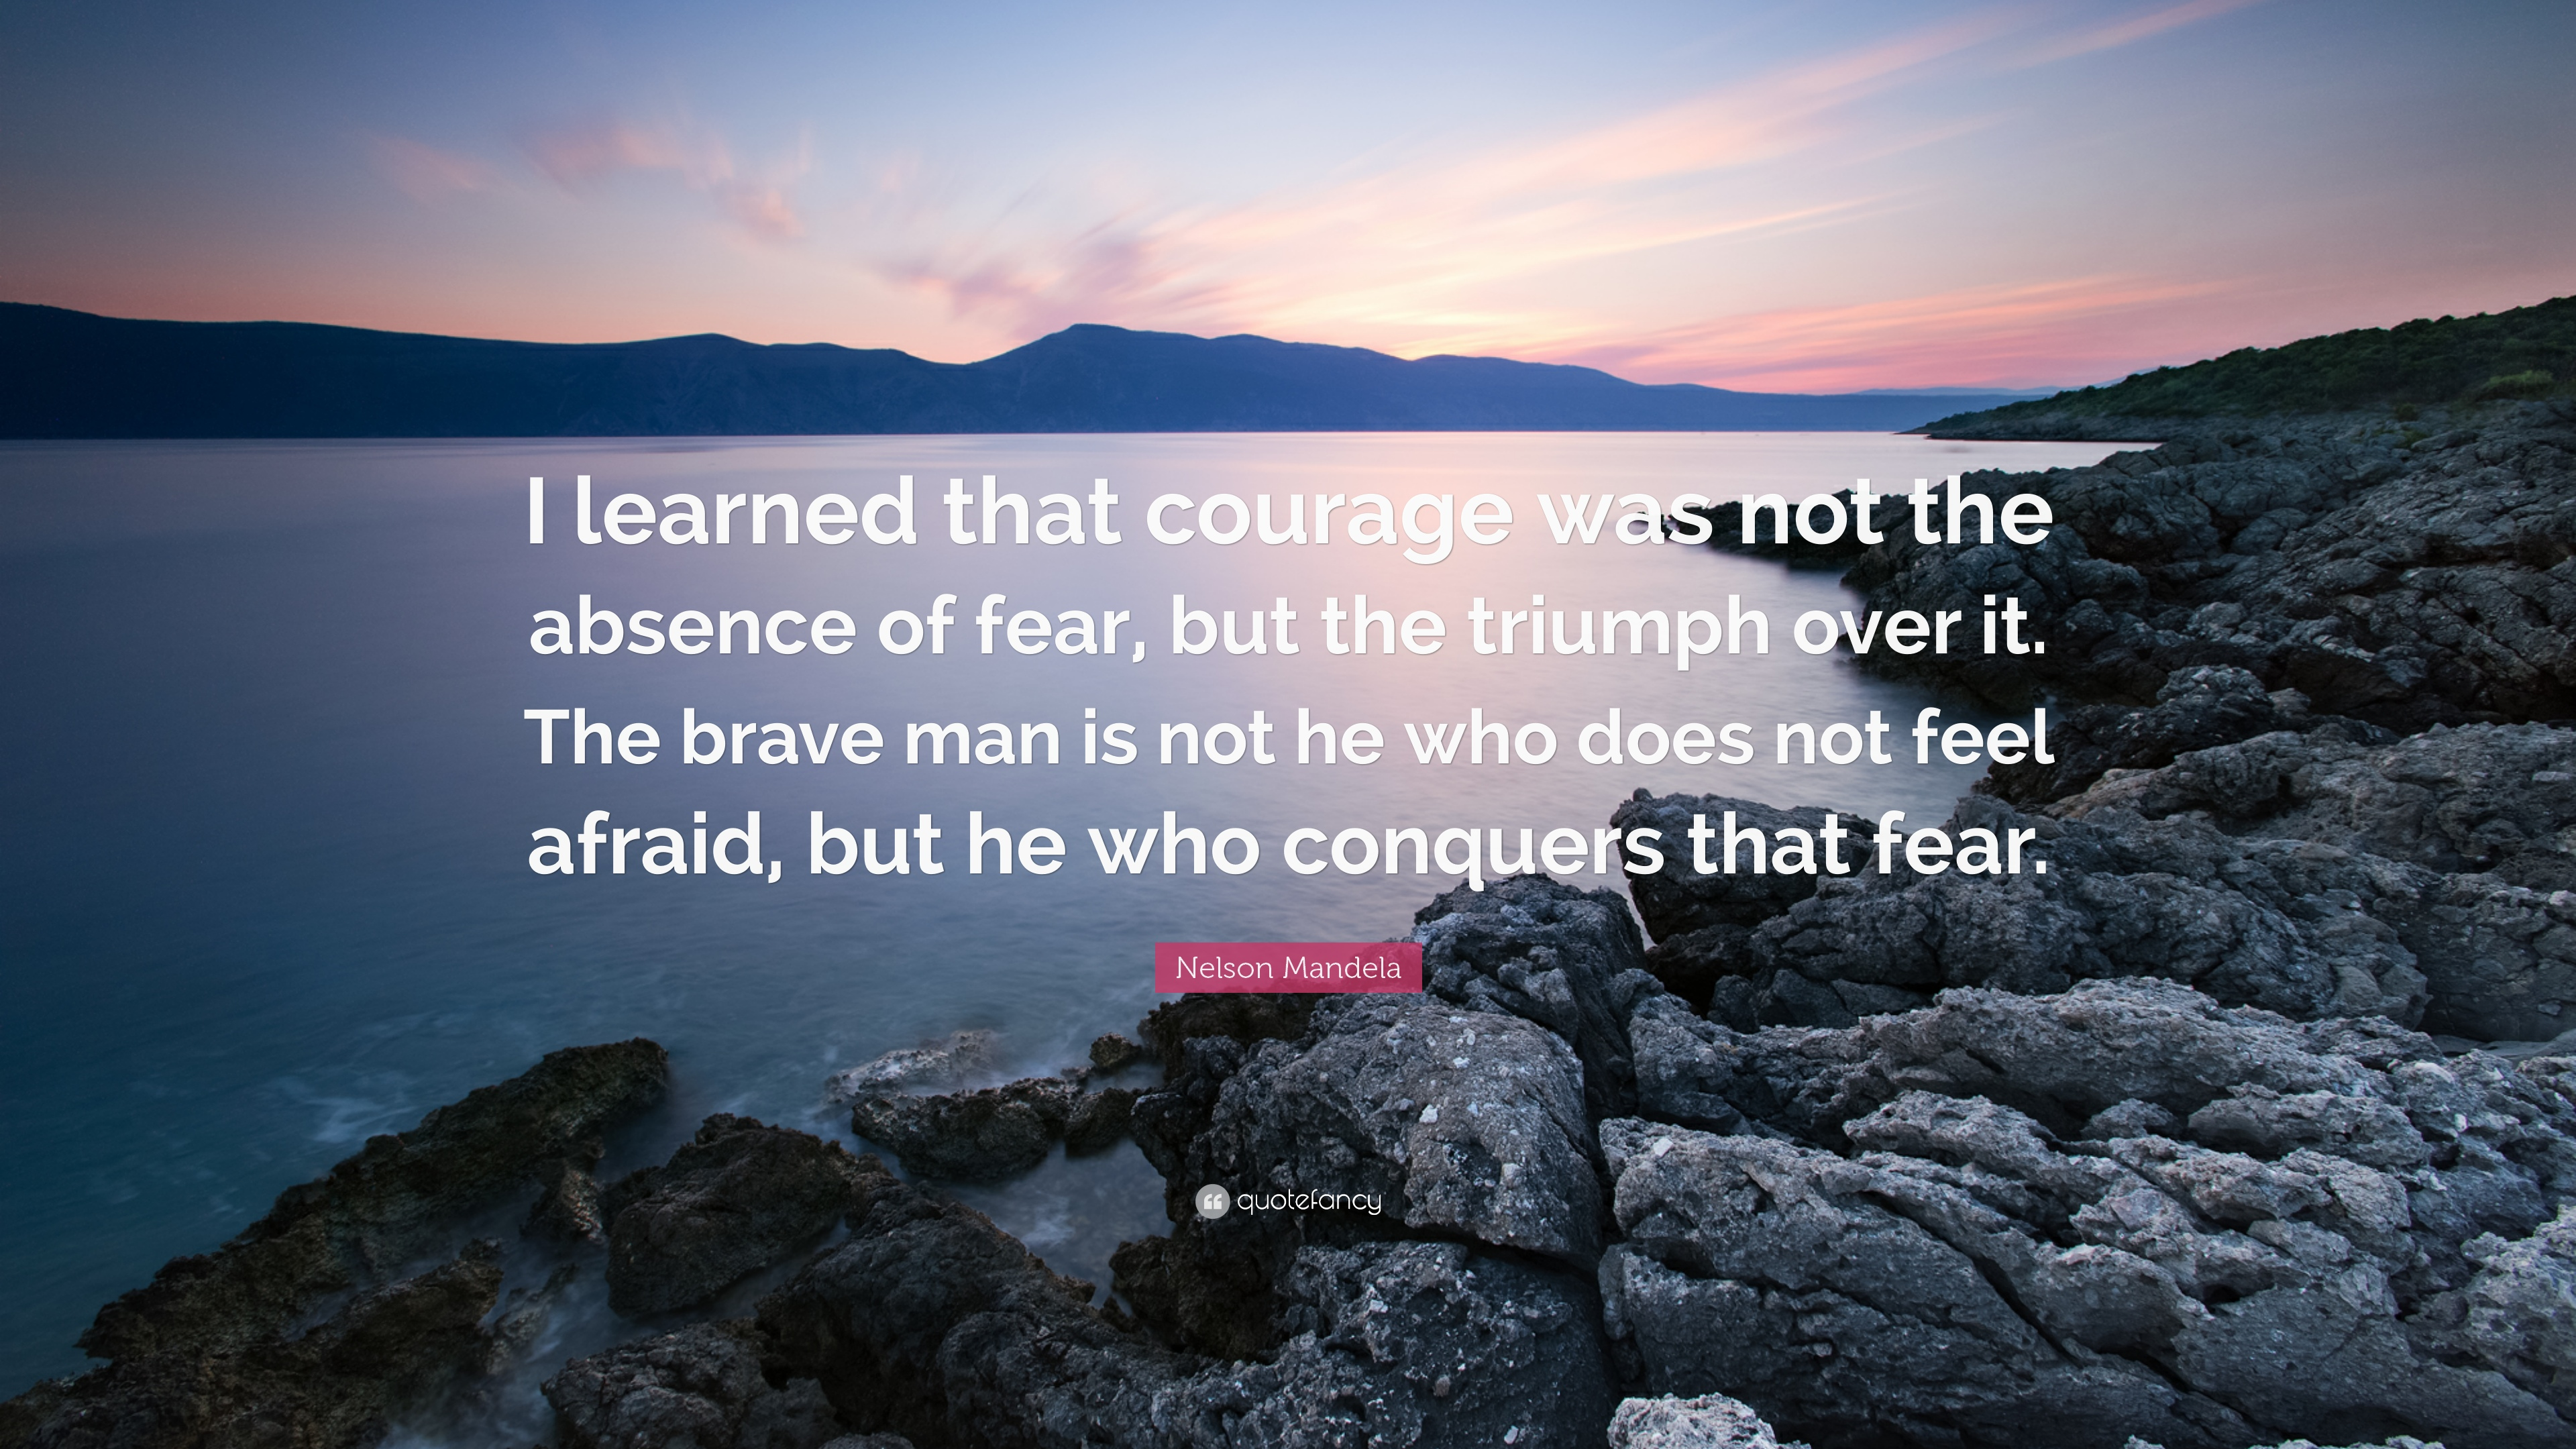 Nelson Mandela Quote: U201cI Learned That Courage Was Not The Absence Of Fear,